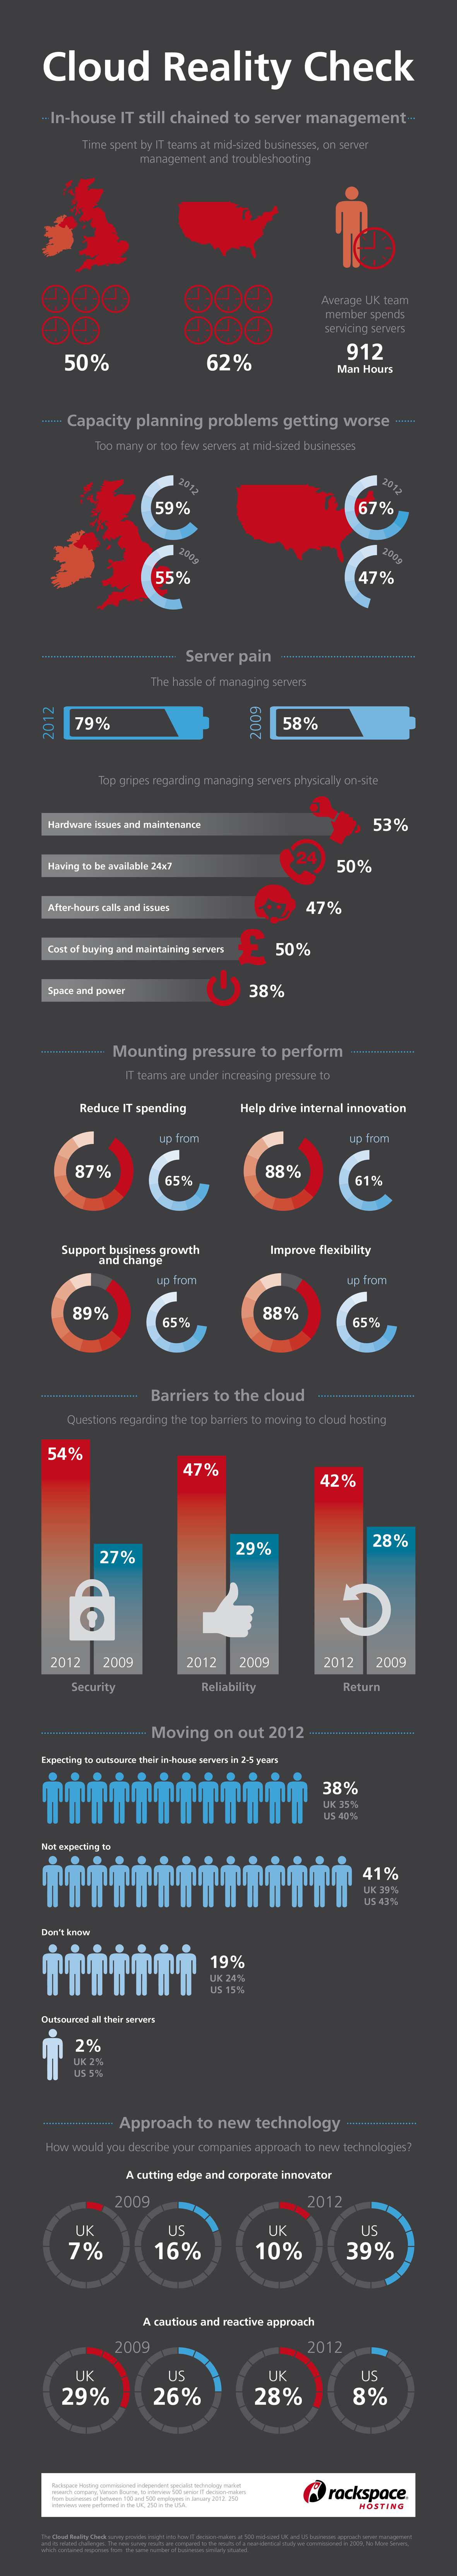 Cloud Reality Check Infographic